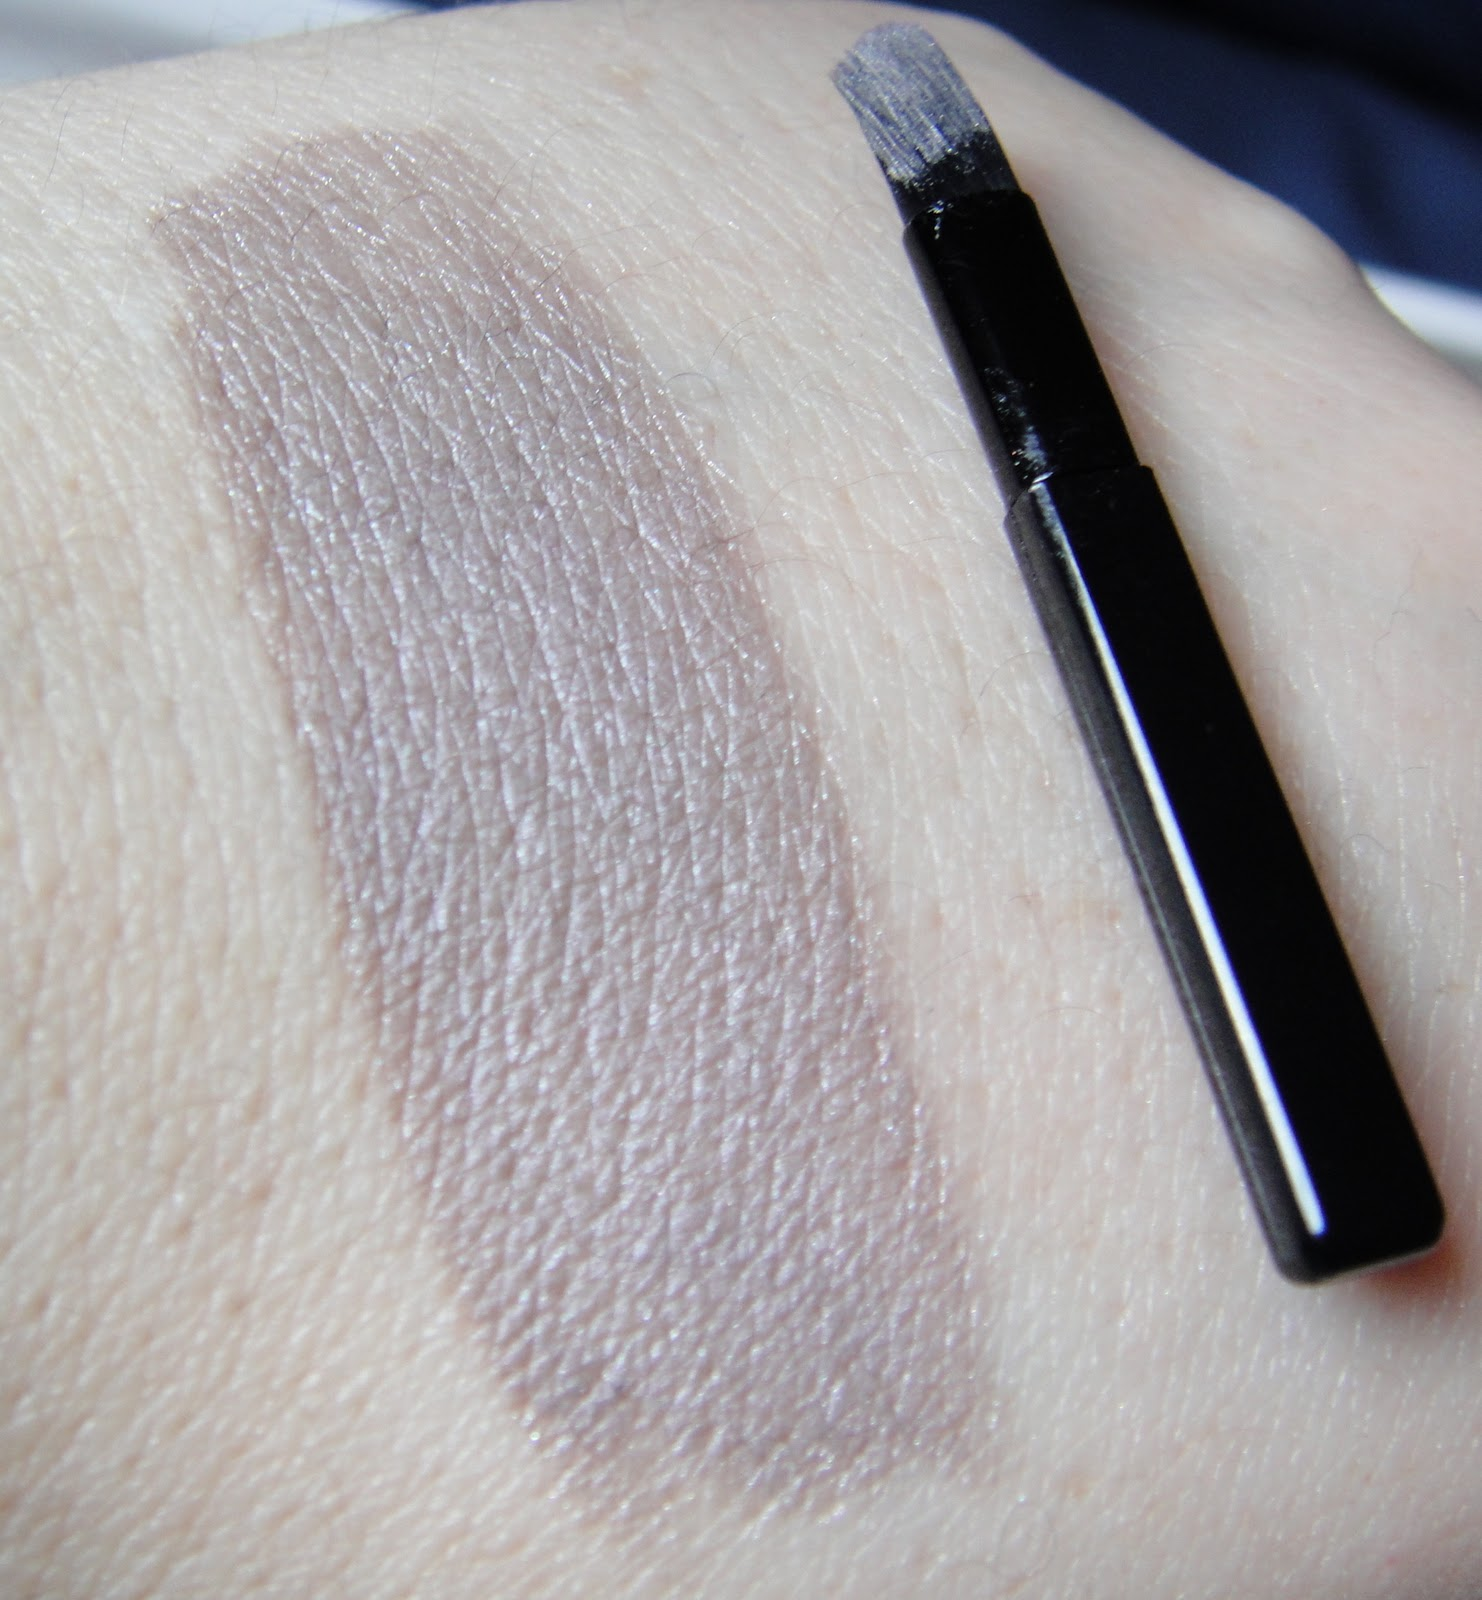 Waterproof eyeshadows ysl and estee lauder get lippie for a 20 product the brush is utterly useless ive been using my clean fingers to apply and find this helps spread the product much better ccuart Gallery